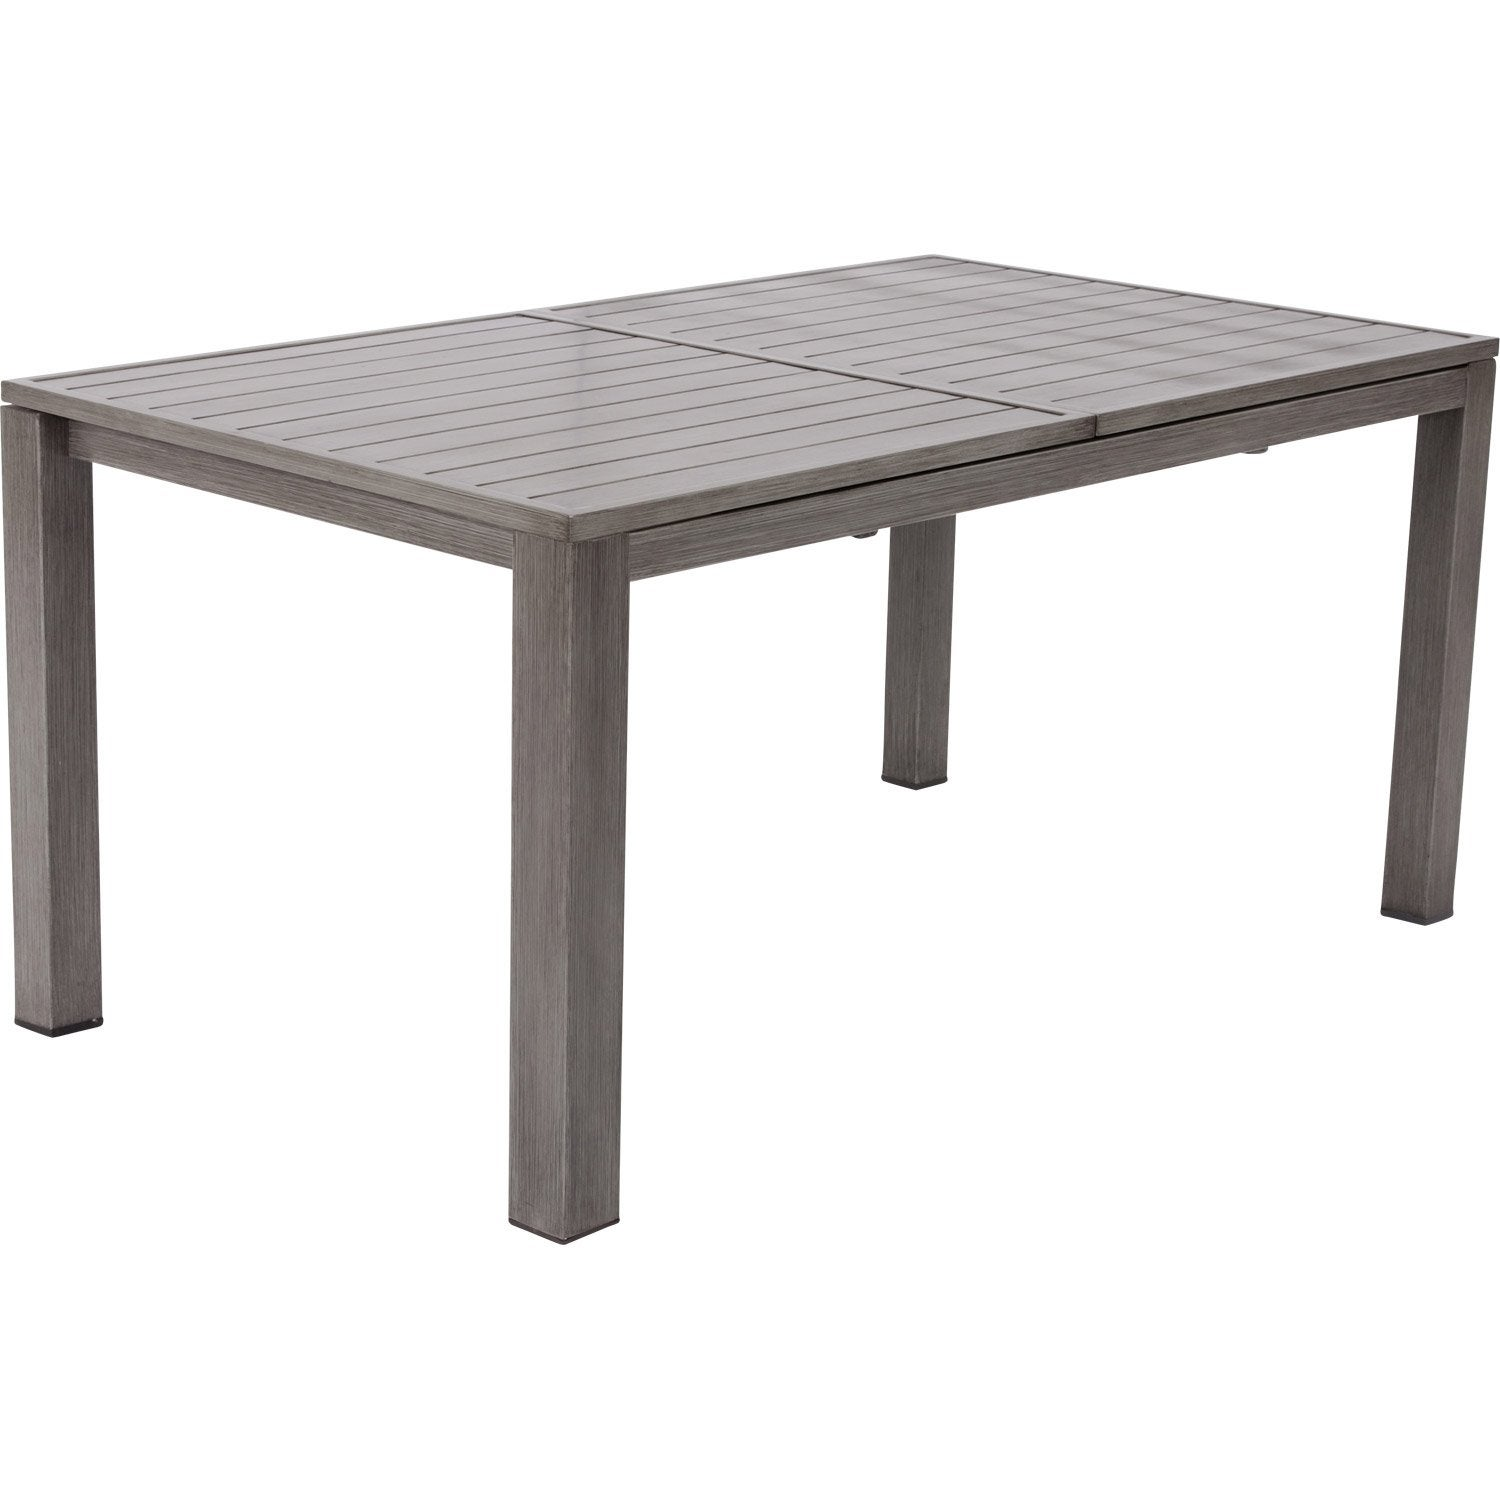 Table de jardin naterial antibes rectangulaire gris 6 8 - Table a rallonge pour 16 personnes ...